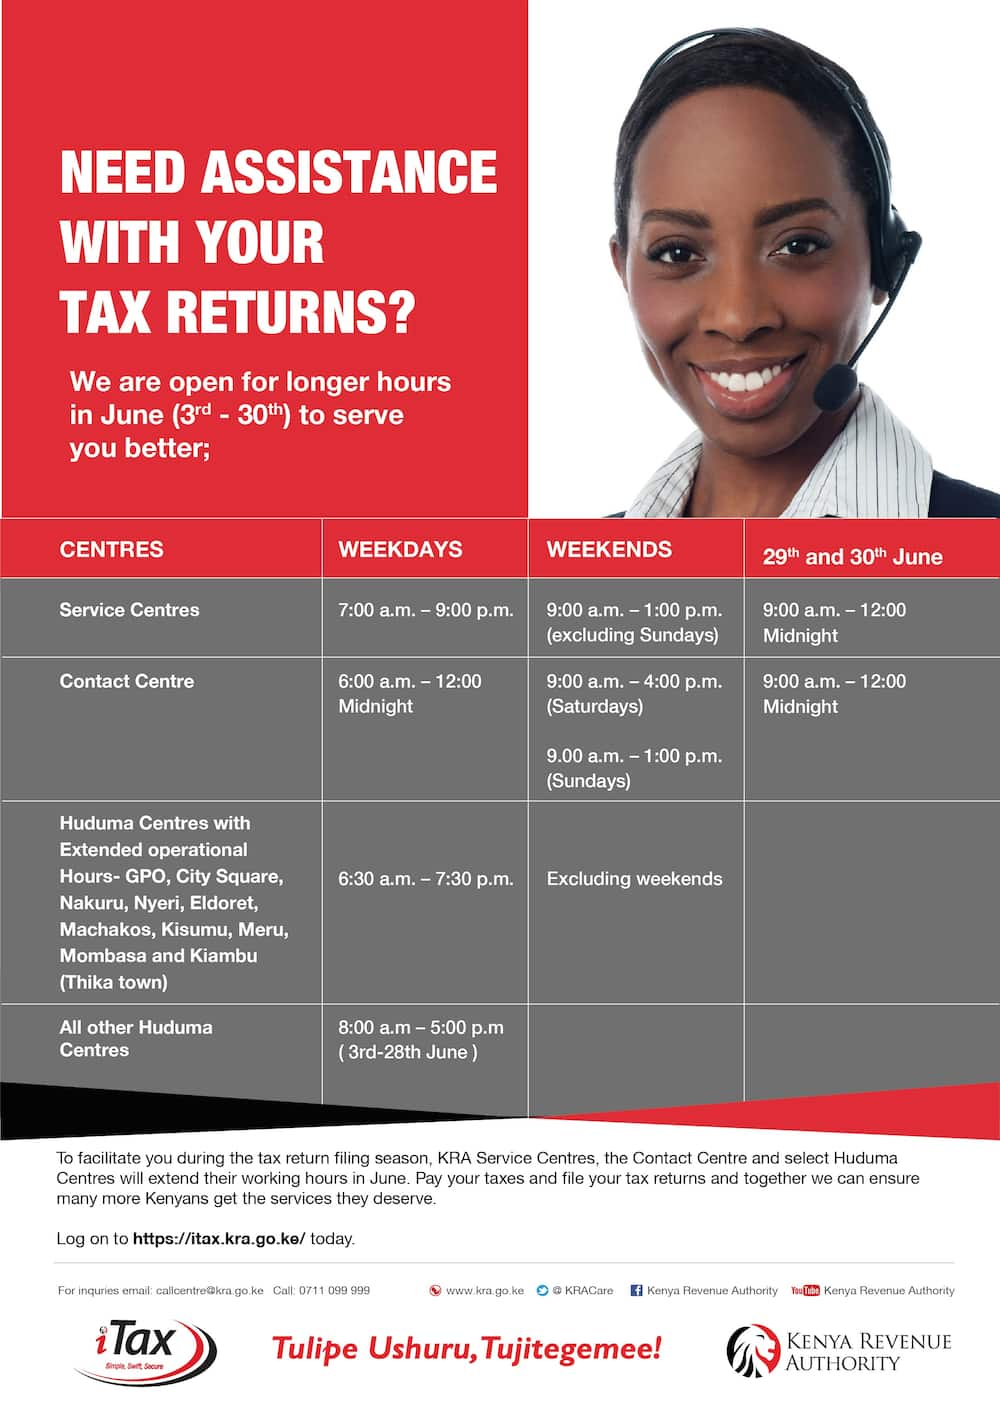 Filing Tax Returns: Good news for taxpayers as KRA extends working hours